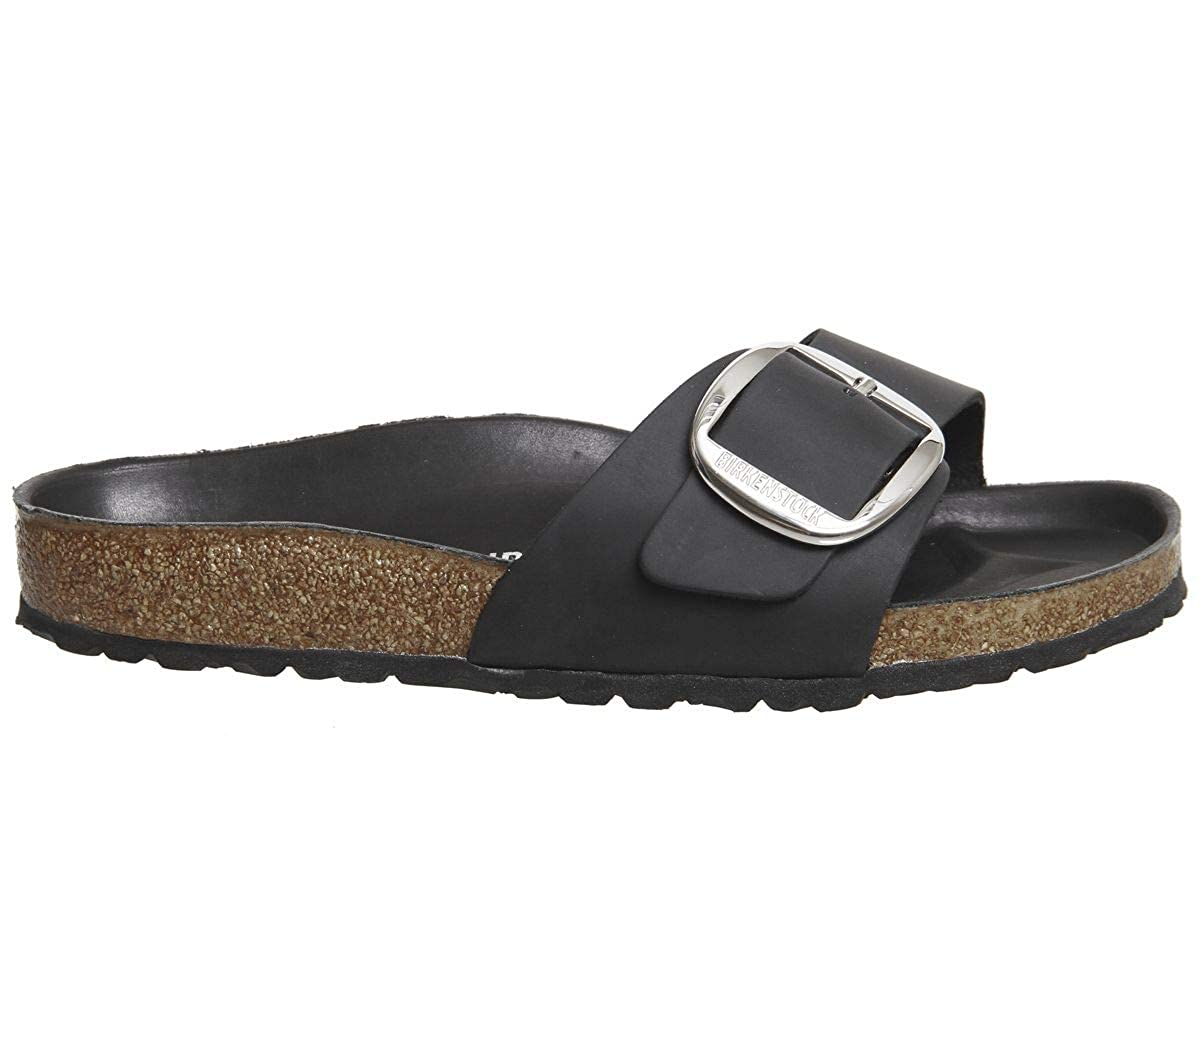 391ba573ab9 Birkenstock Women's Madrid Big Buckle Mules: Amazon.co.uk: Shoes & Bags